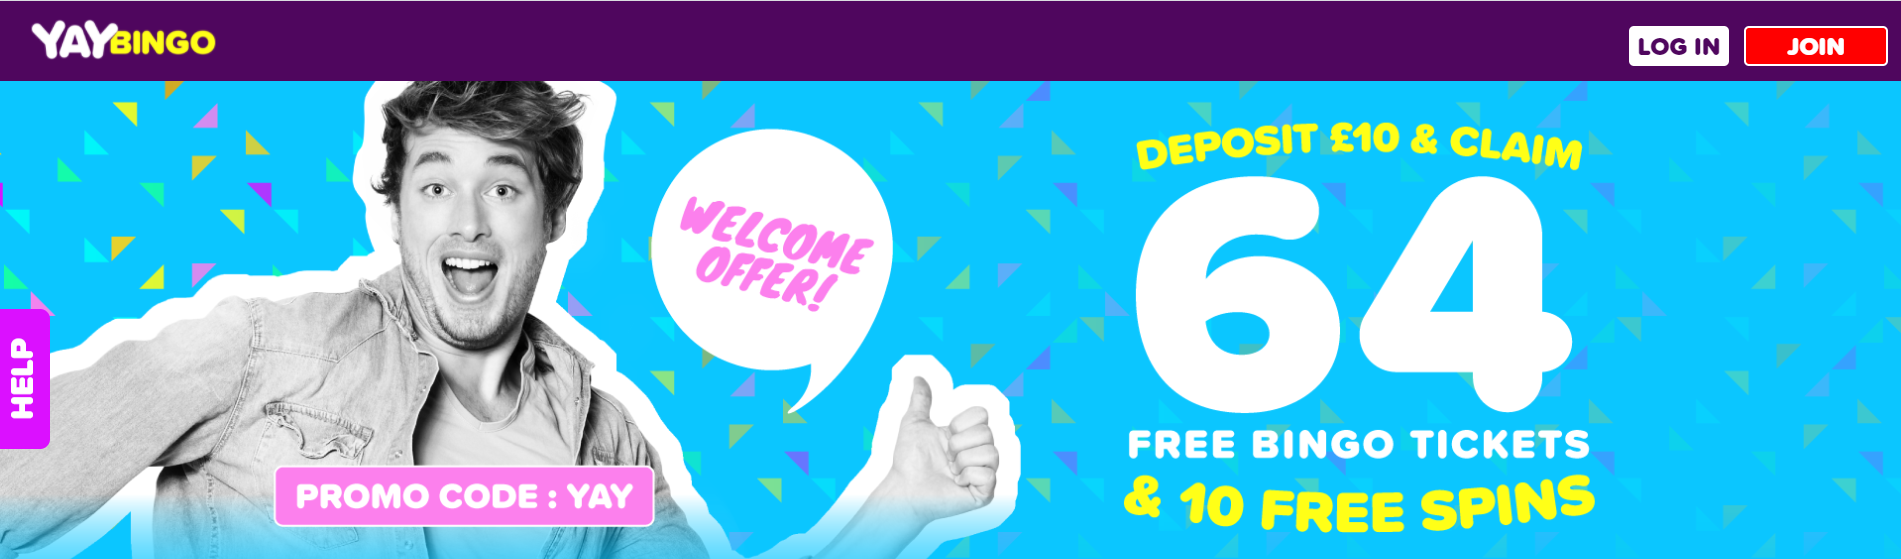 Yay Bingo Sign Up Offer